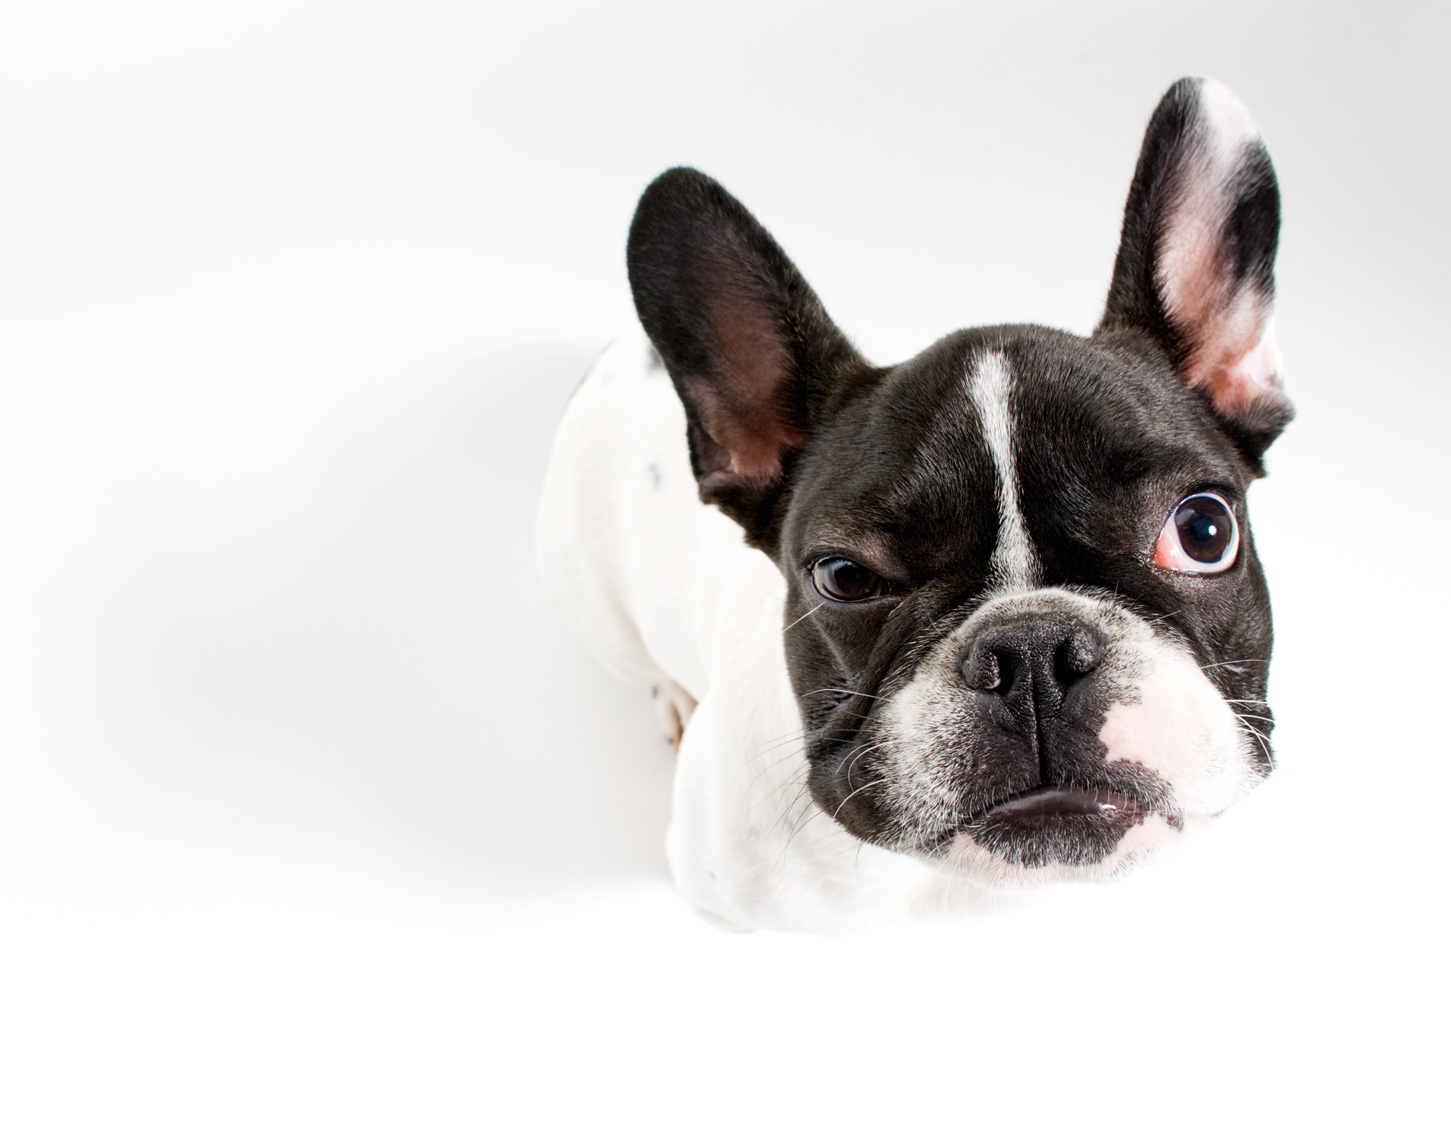 Los Angeles Dog Photography, Michael Brian, pet, cat, French Bulldog, black and white, Studio portrait